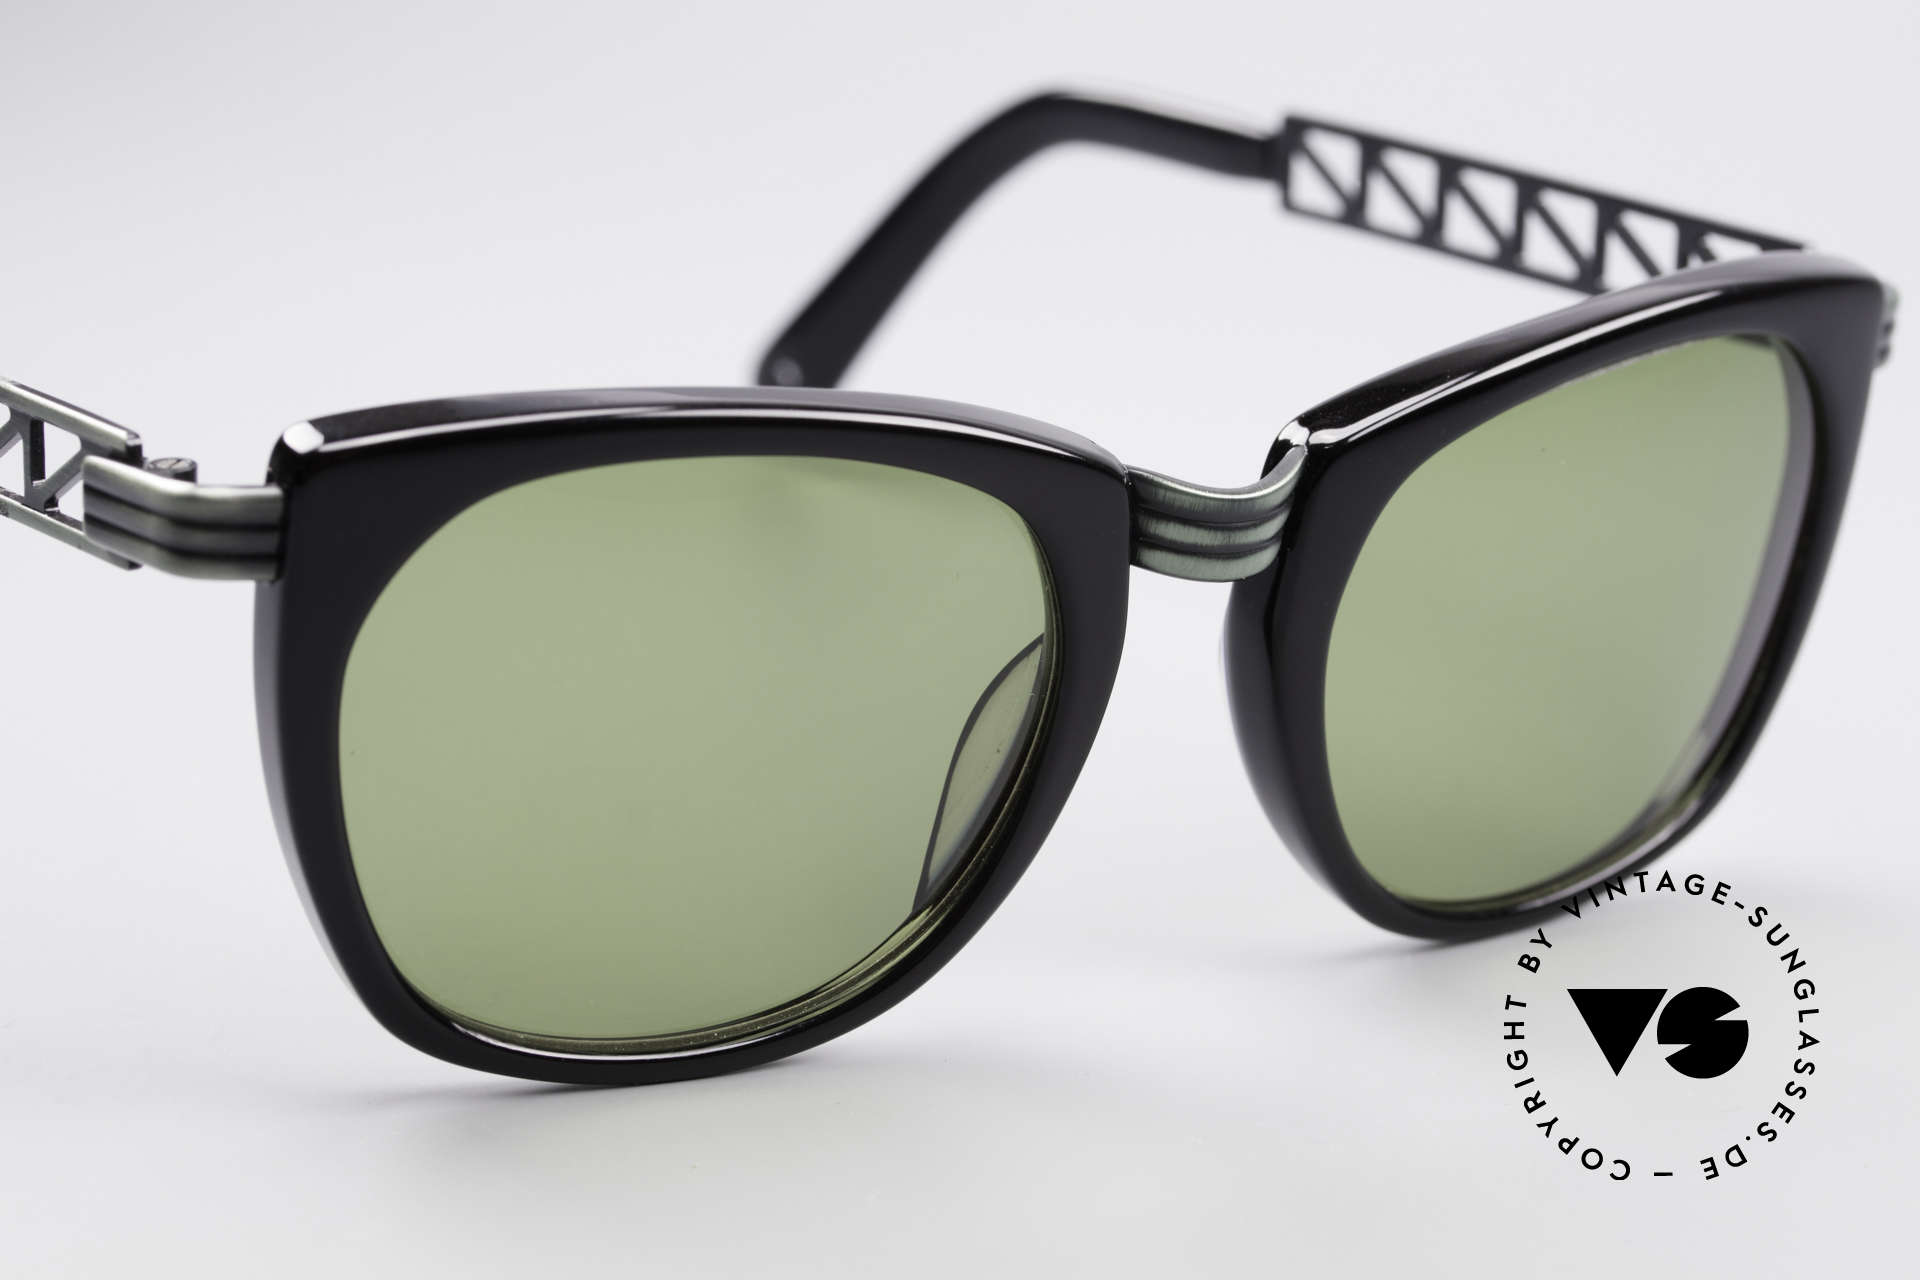 Jean Paul Gaultier 56-0272 90's Steampunk Sunglasses, NO RETRO shades, but a 20 years old ORIGINAL, Made for Men and Women